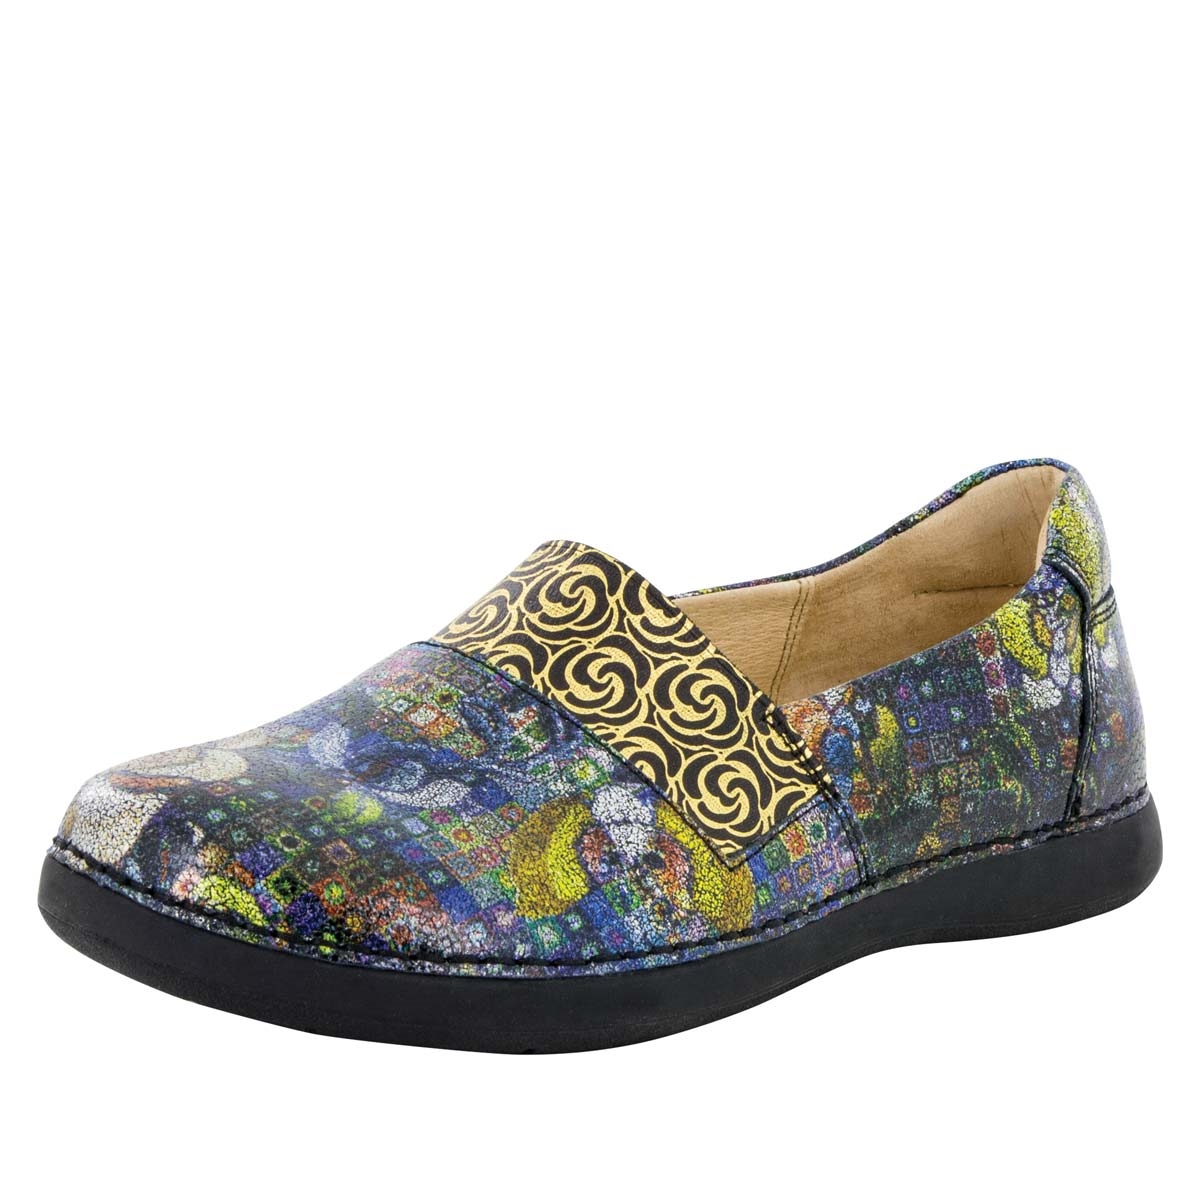 Alegria Glee Gypsy Rose multi-color slip resistant comfort flats for women.  View Larger Photo Email ...